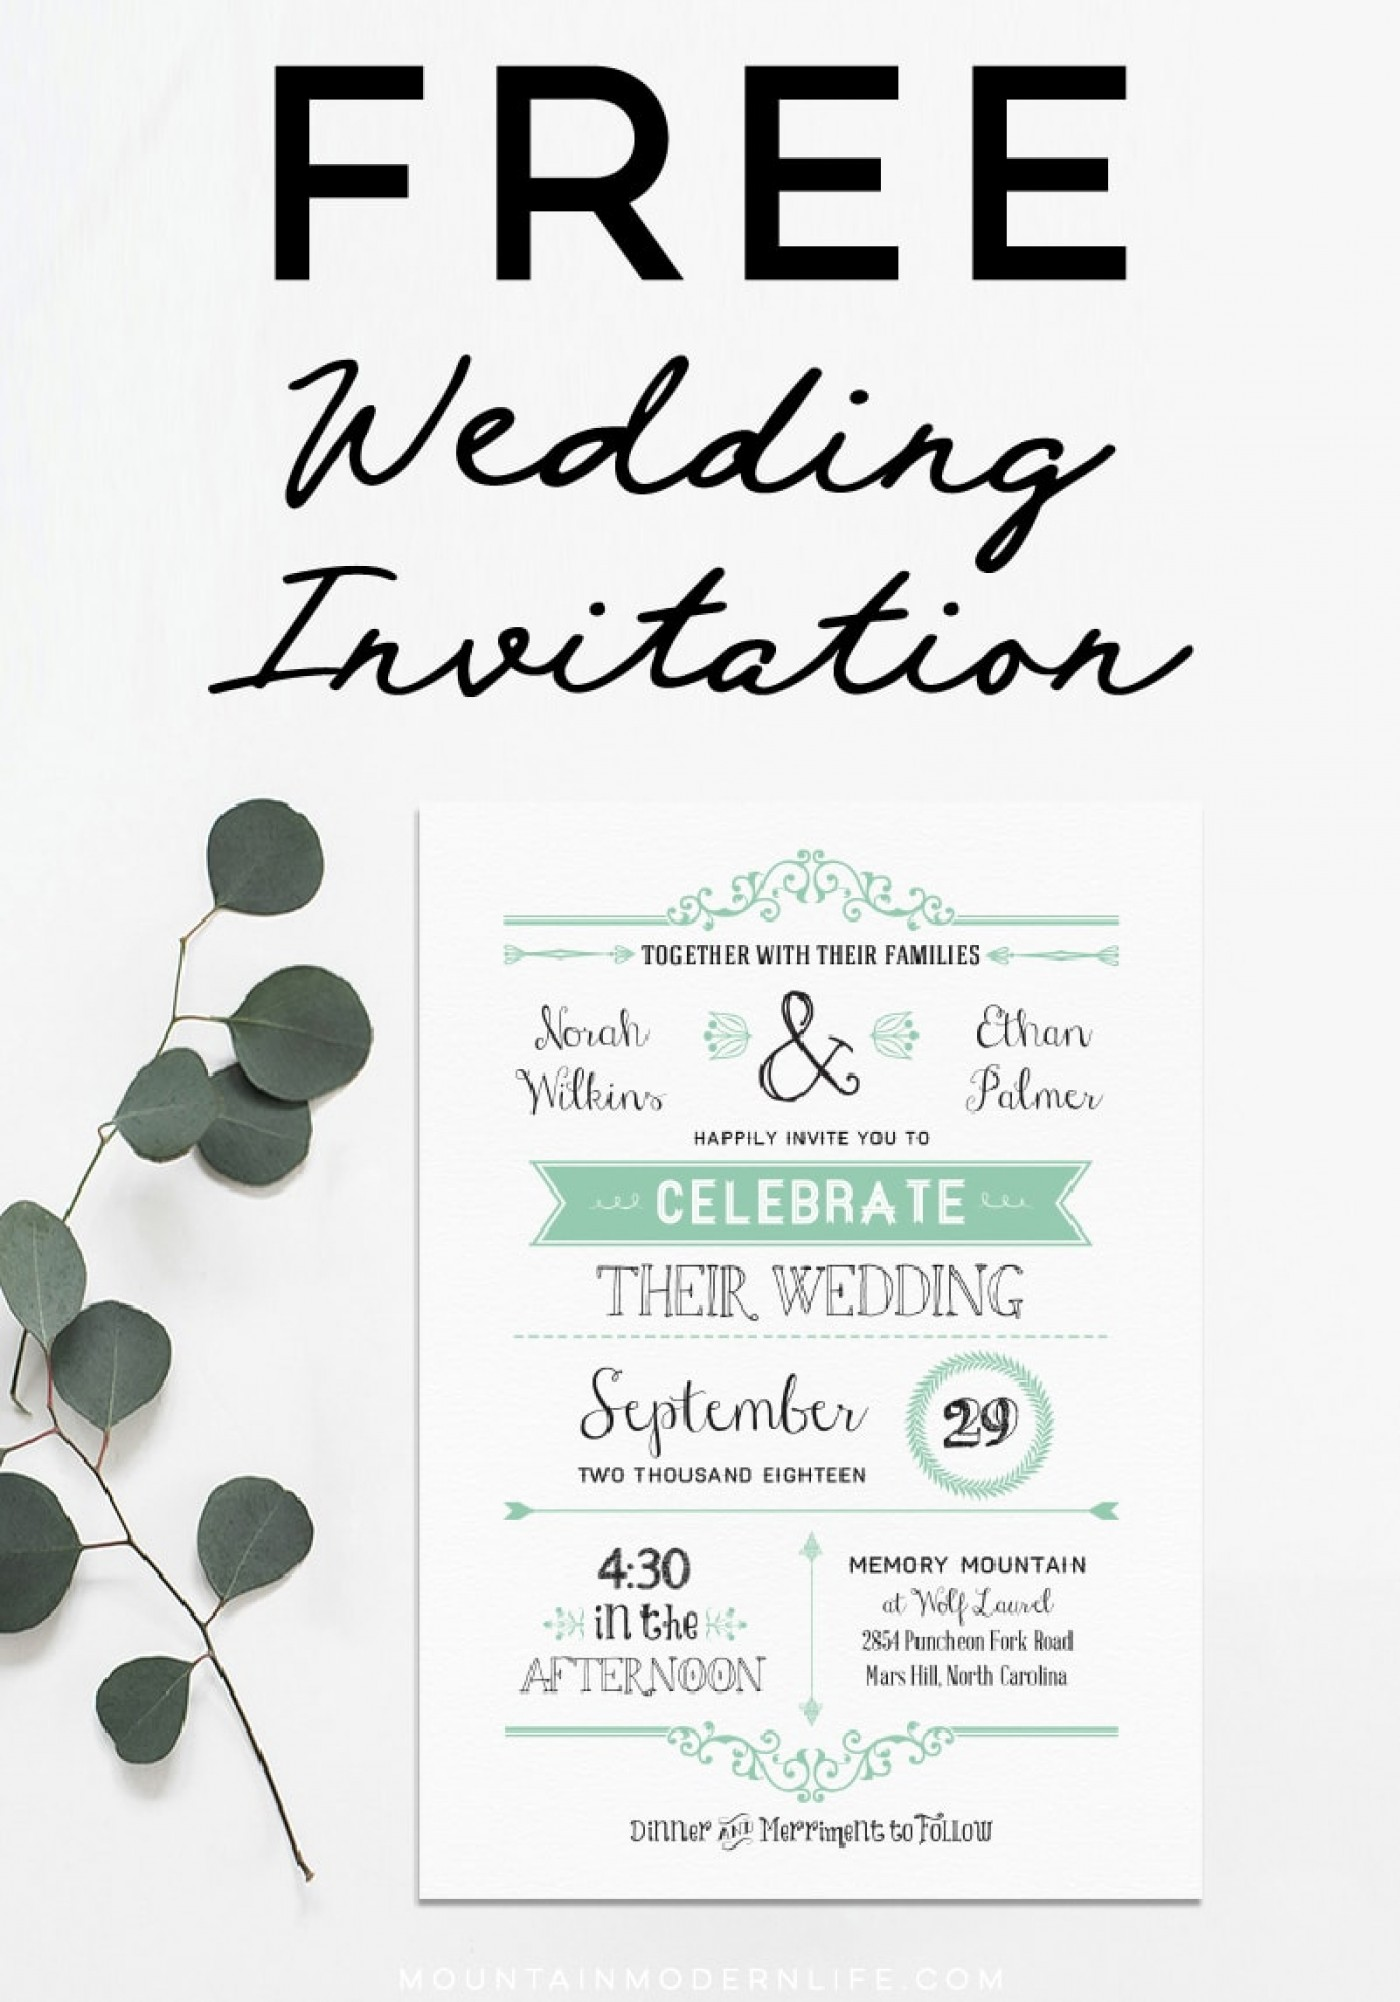 007 Free Downloadable Invitations Templates Diy Wedding.